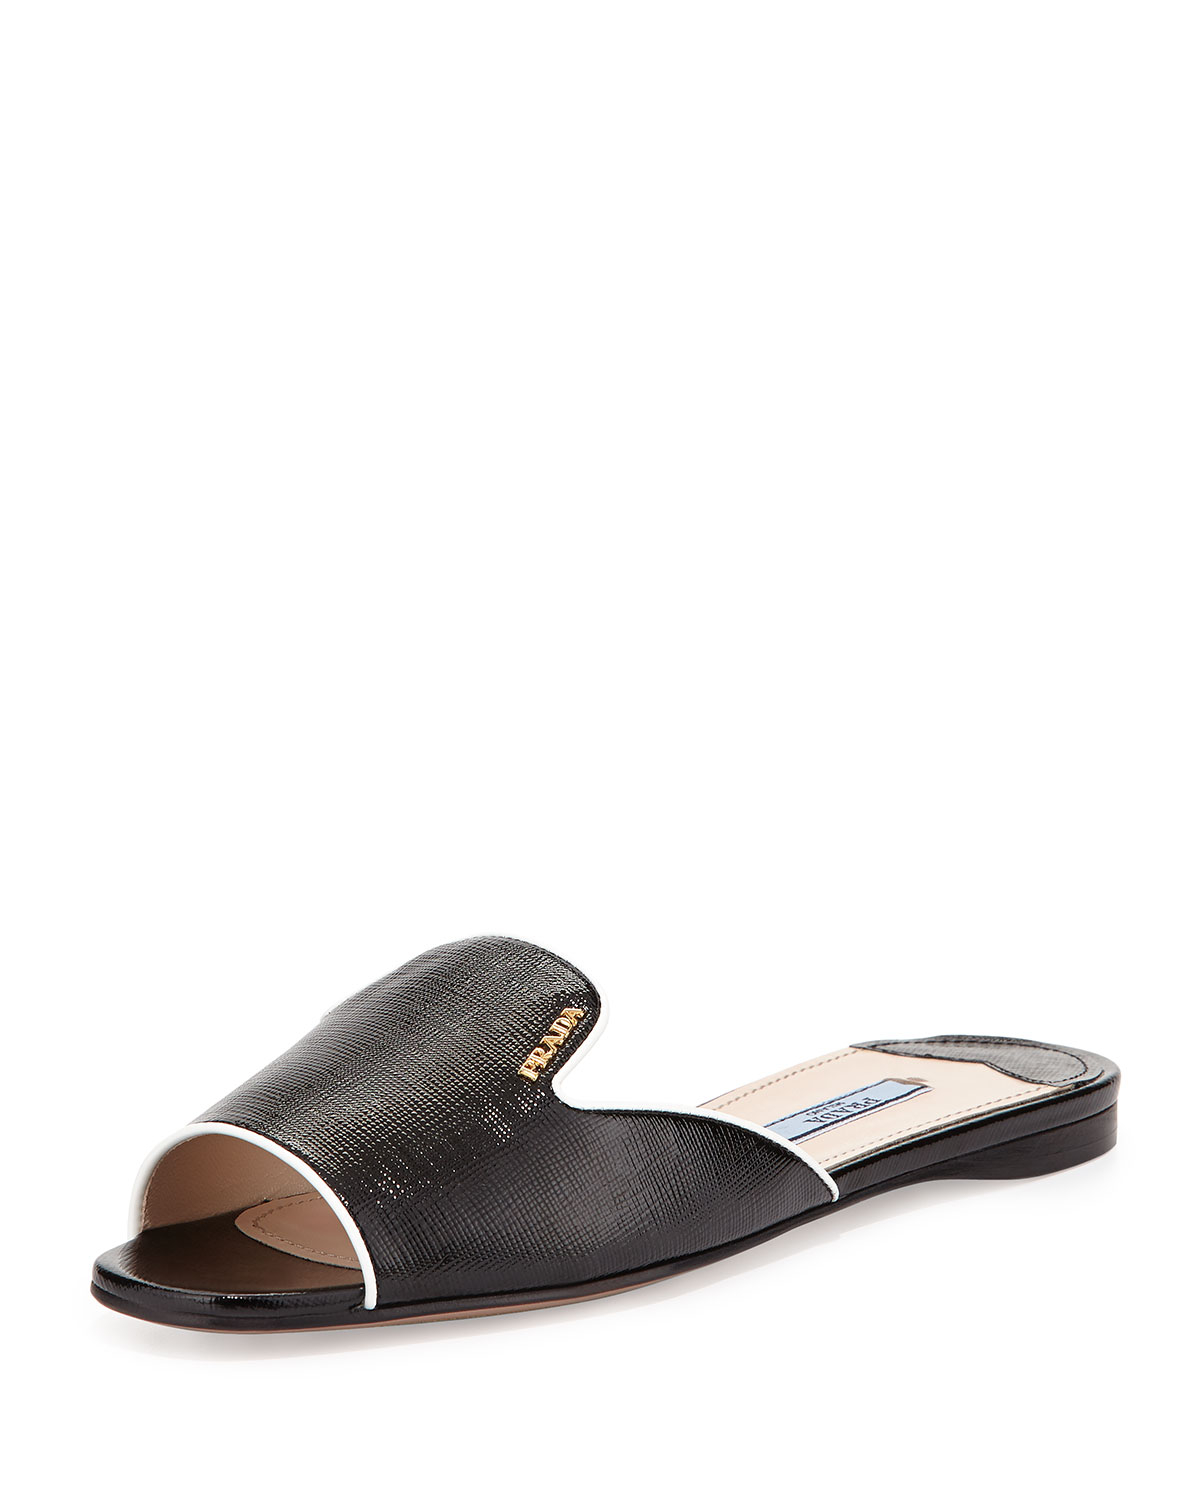 Lyst - Prada Notched-Vamp Patent-Leather Slides in Black 7c8ec3eb9c63